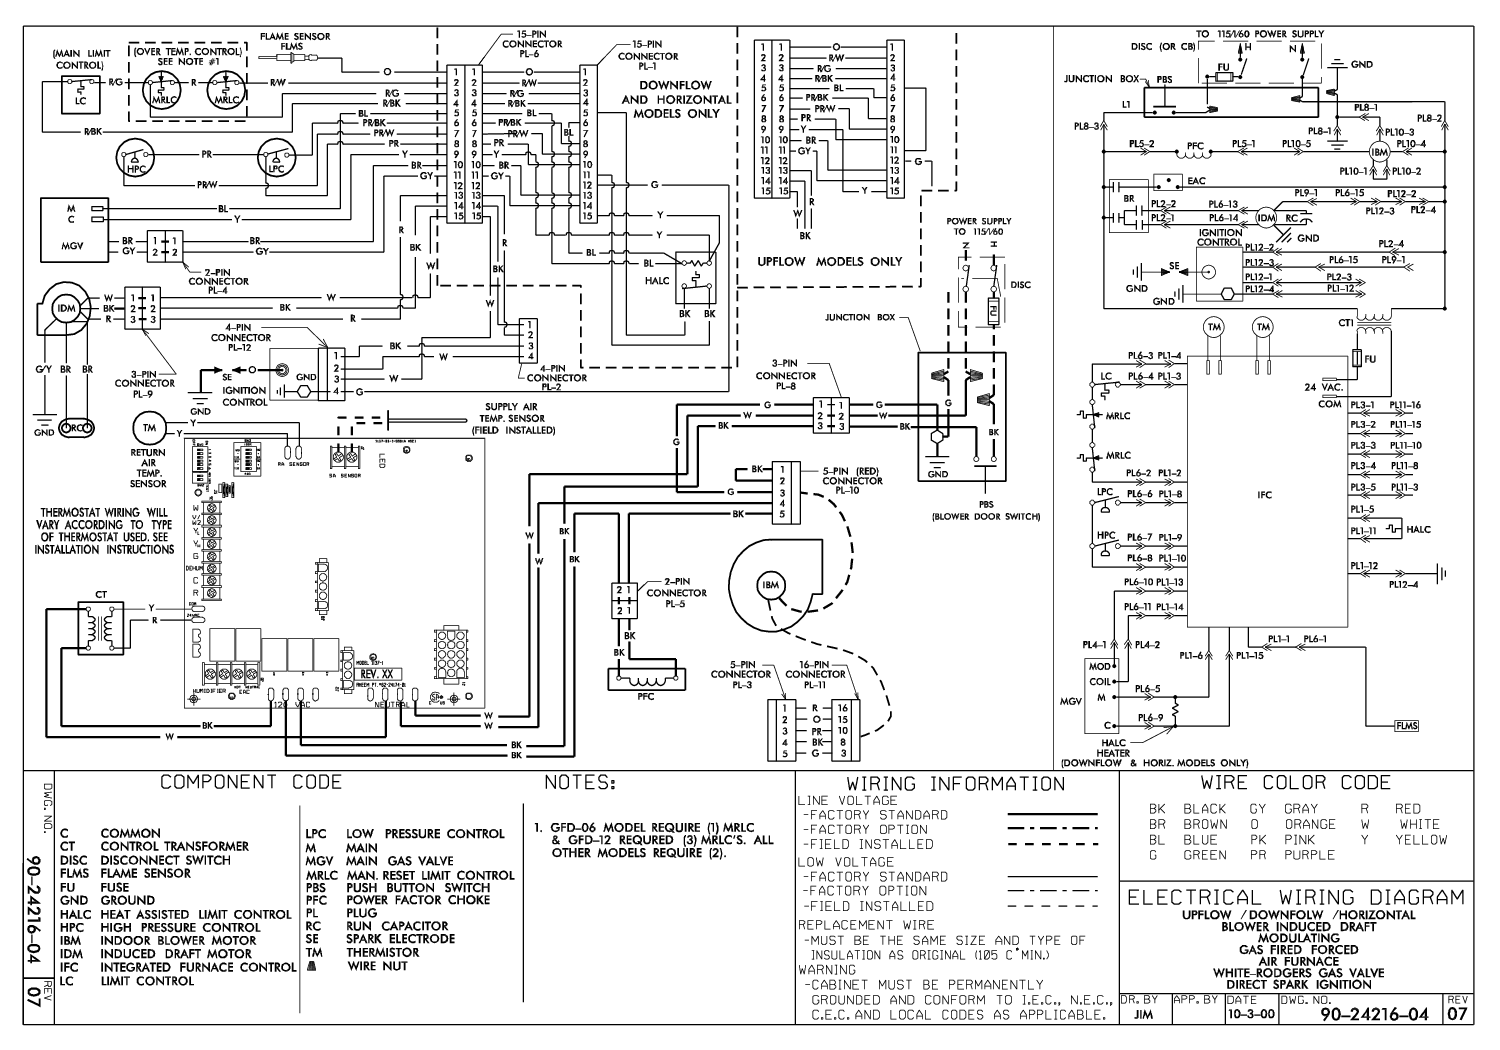 My Lennox Furnace Wiring Diagram Model Schematic Wiring